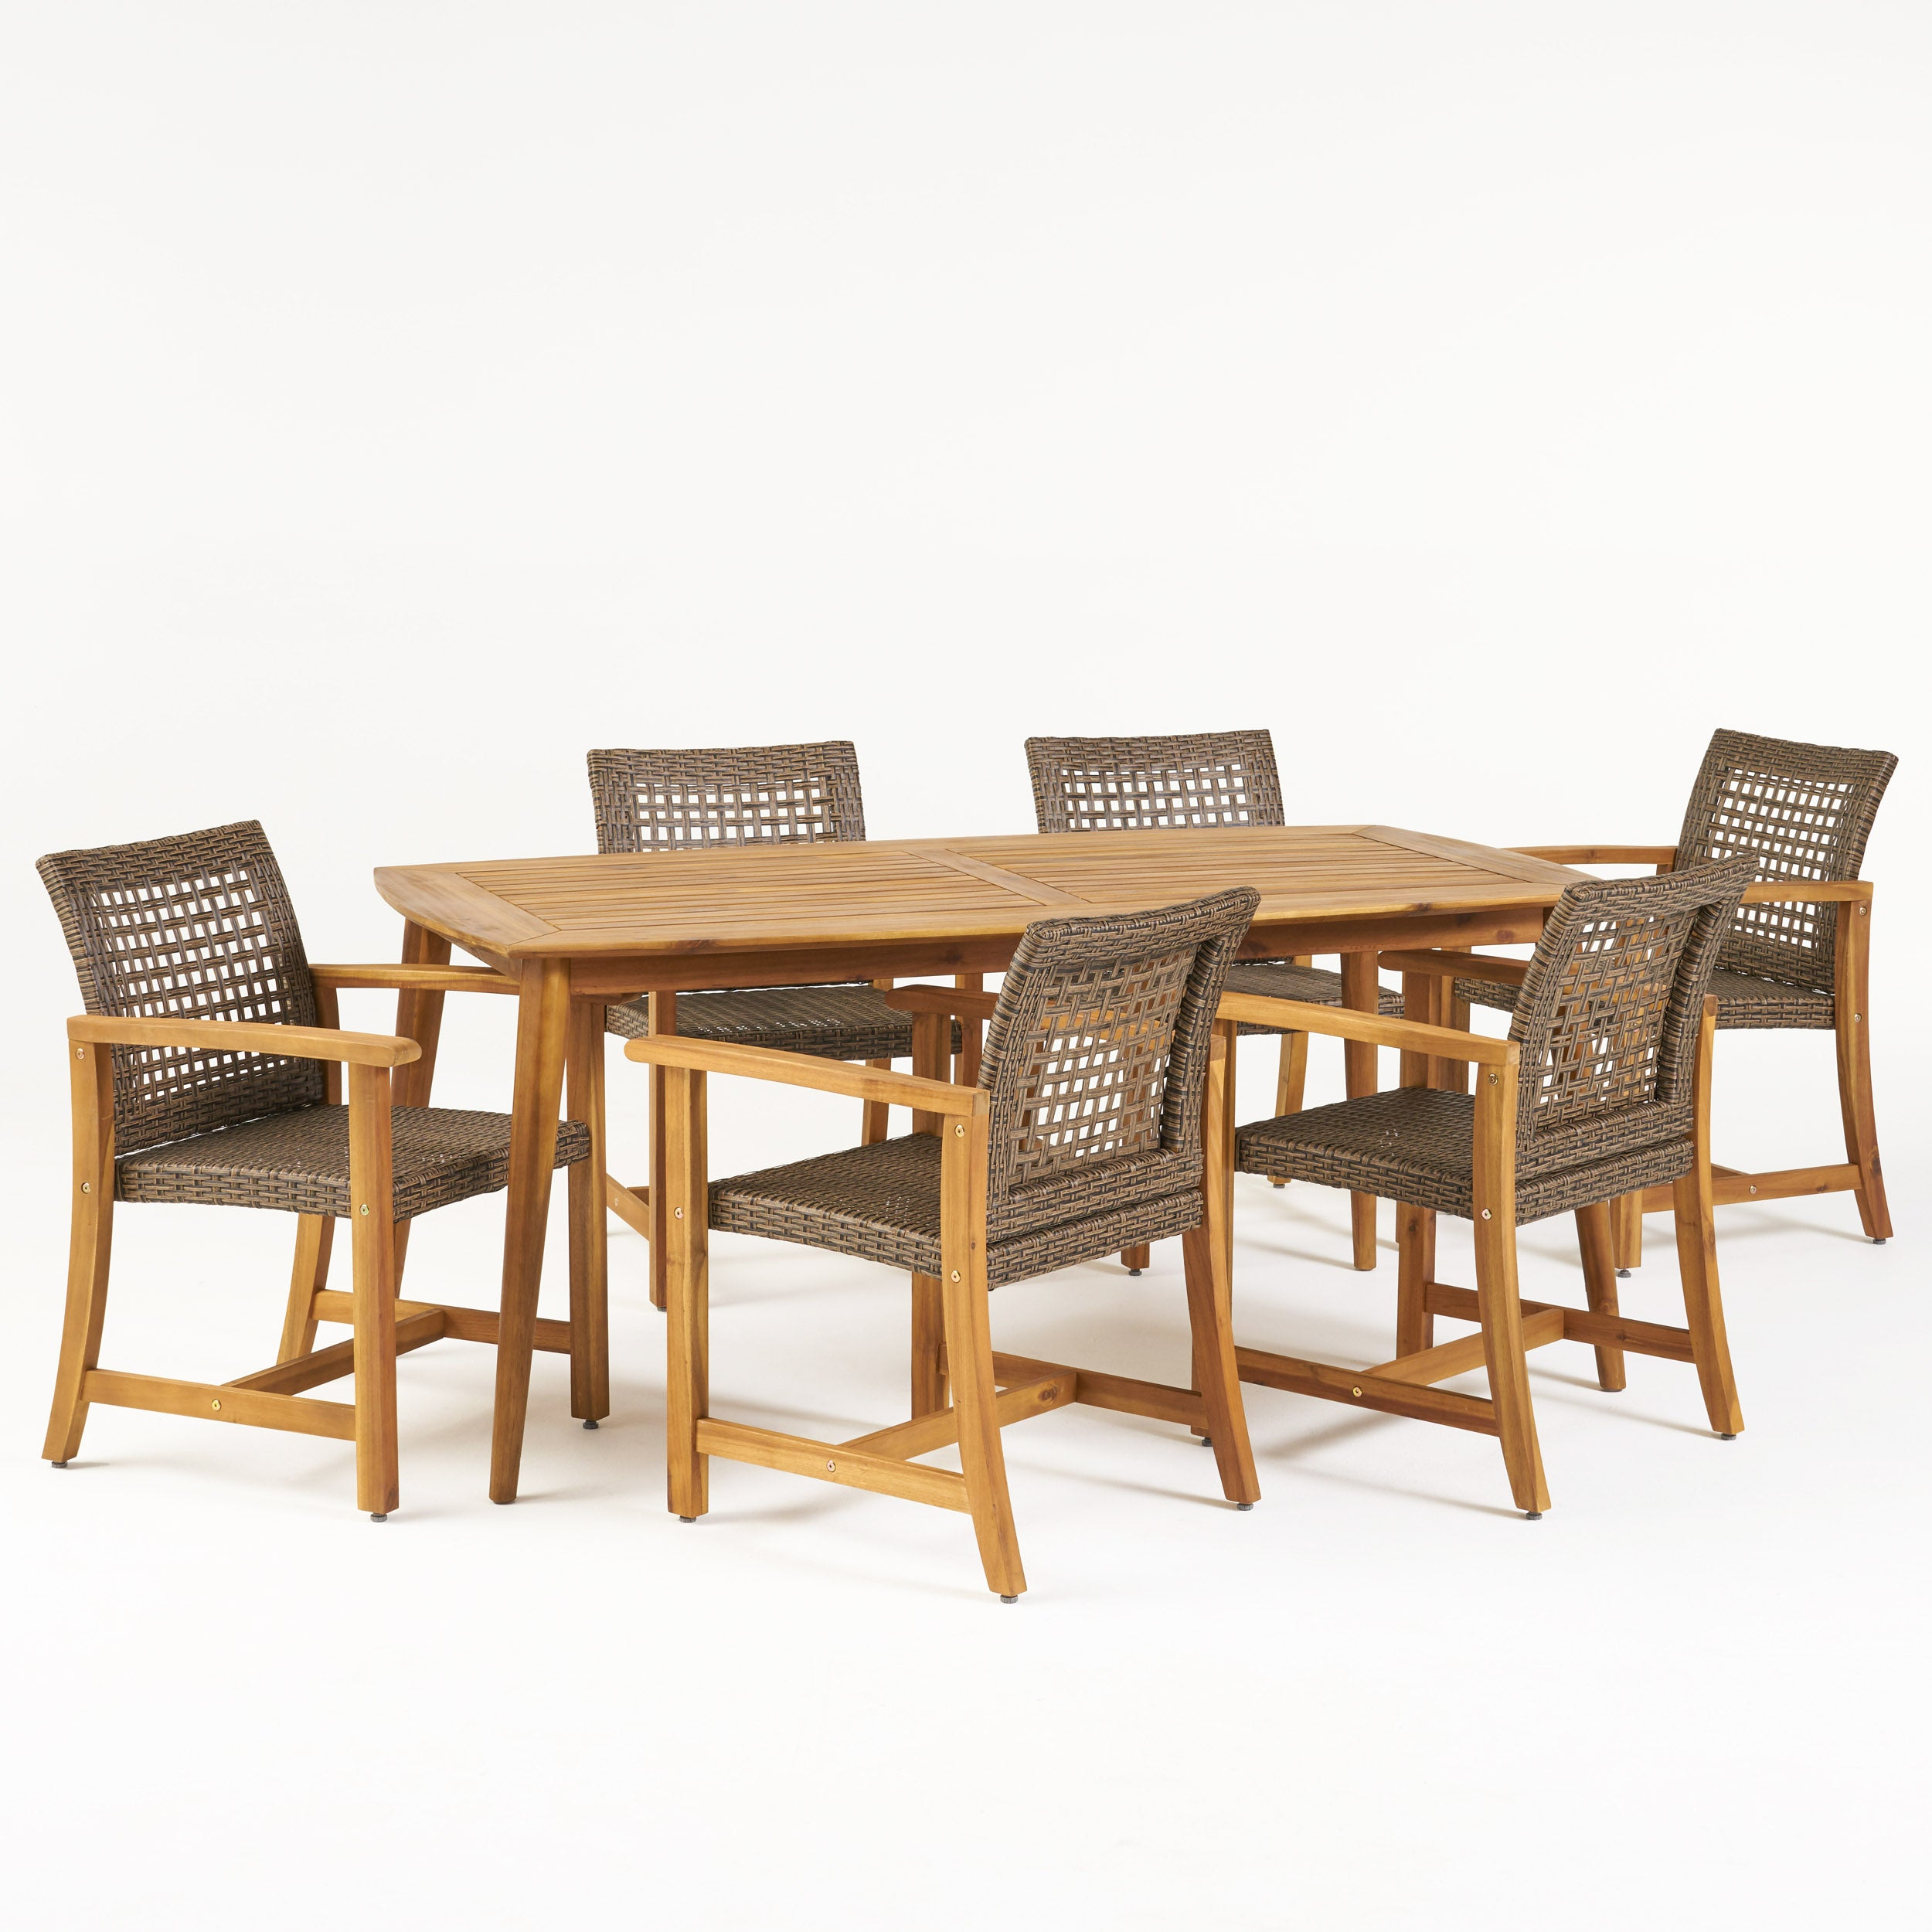 Alian Outdoor 6 Seater Acacia Wood Dining Set Default Title